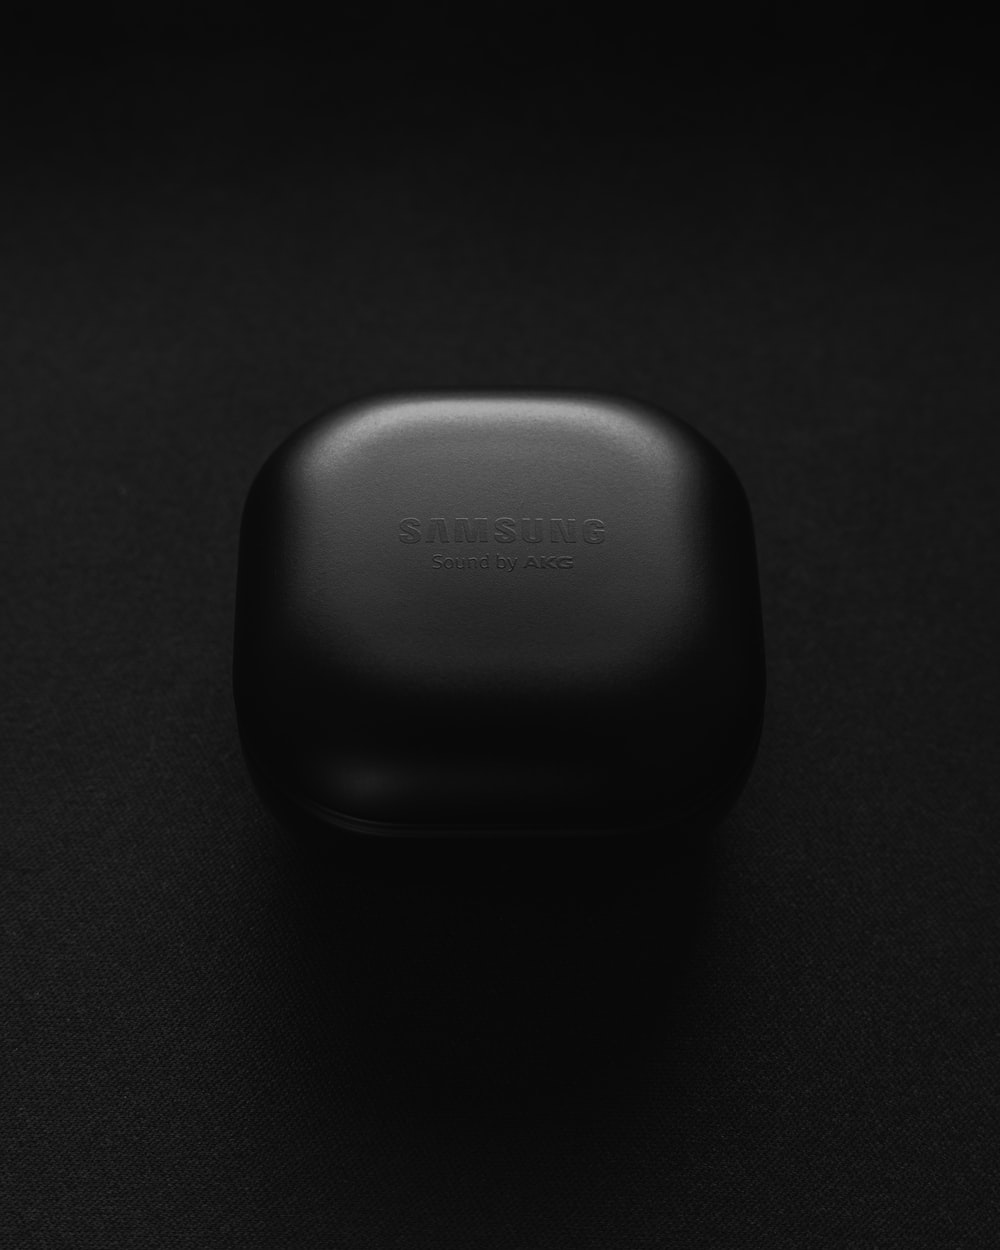 black and white plastic container